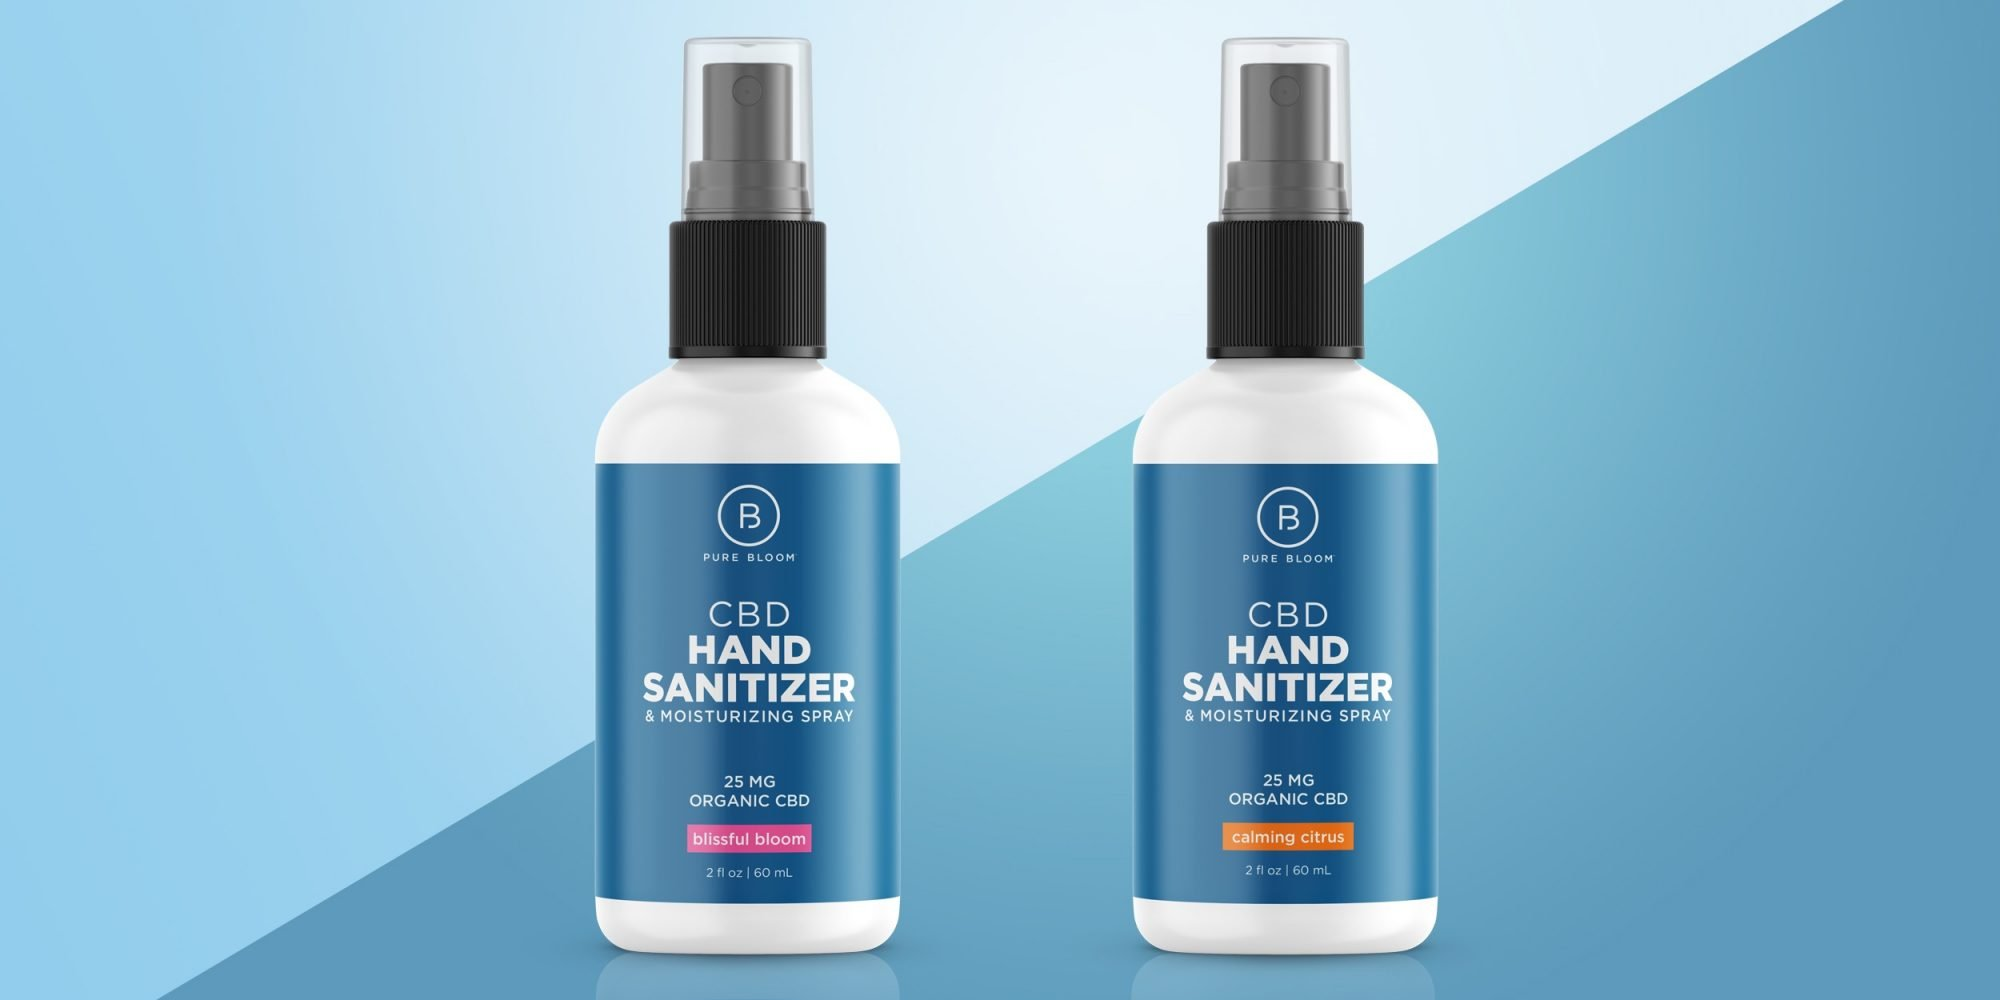 Indie Beauty Brands Pivot To Produce In-Demand Hand Sanitizer